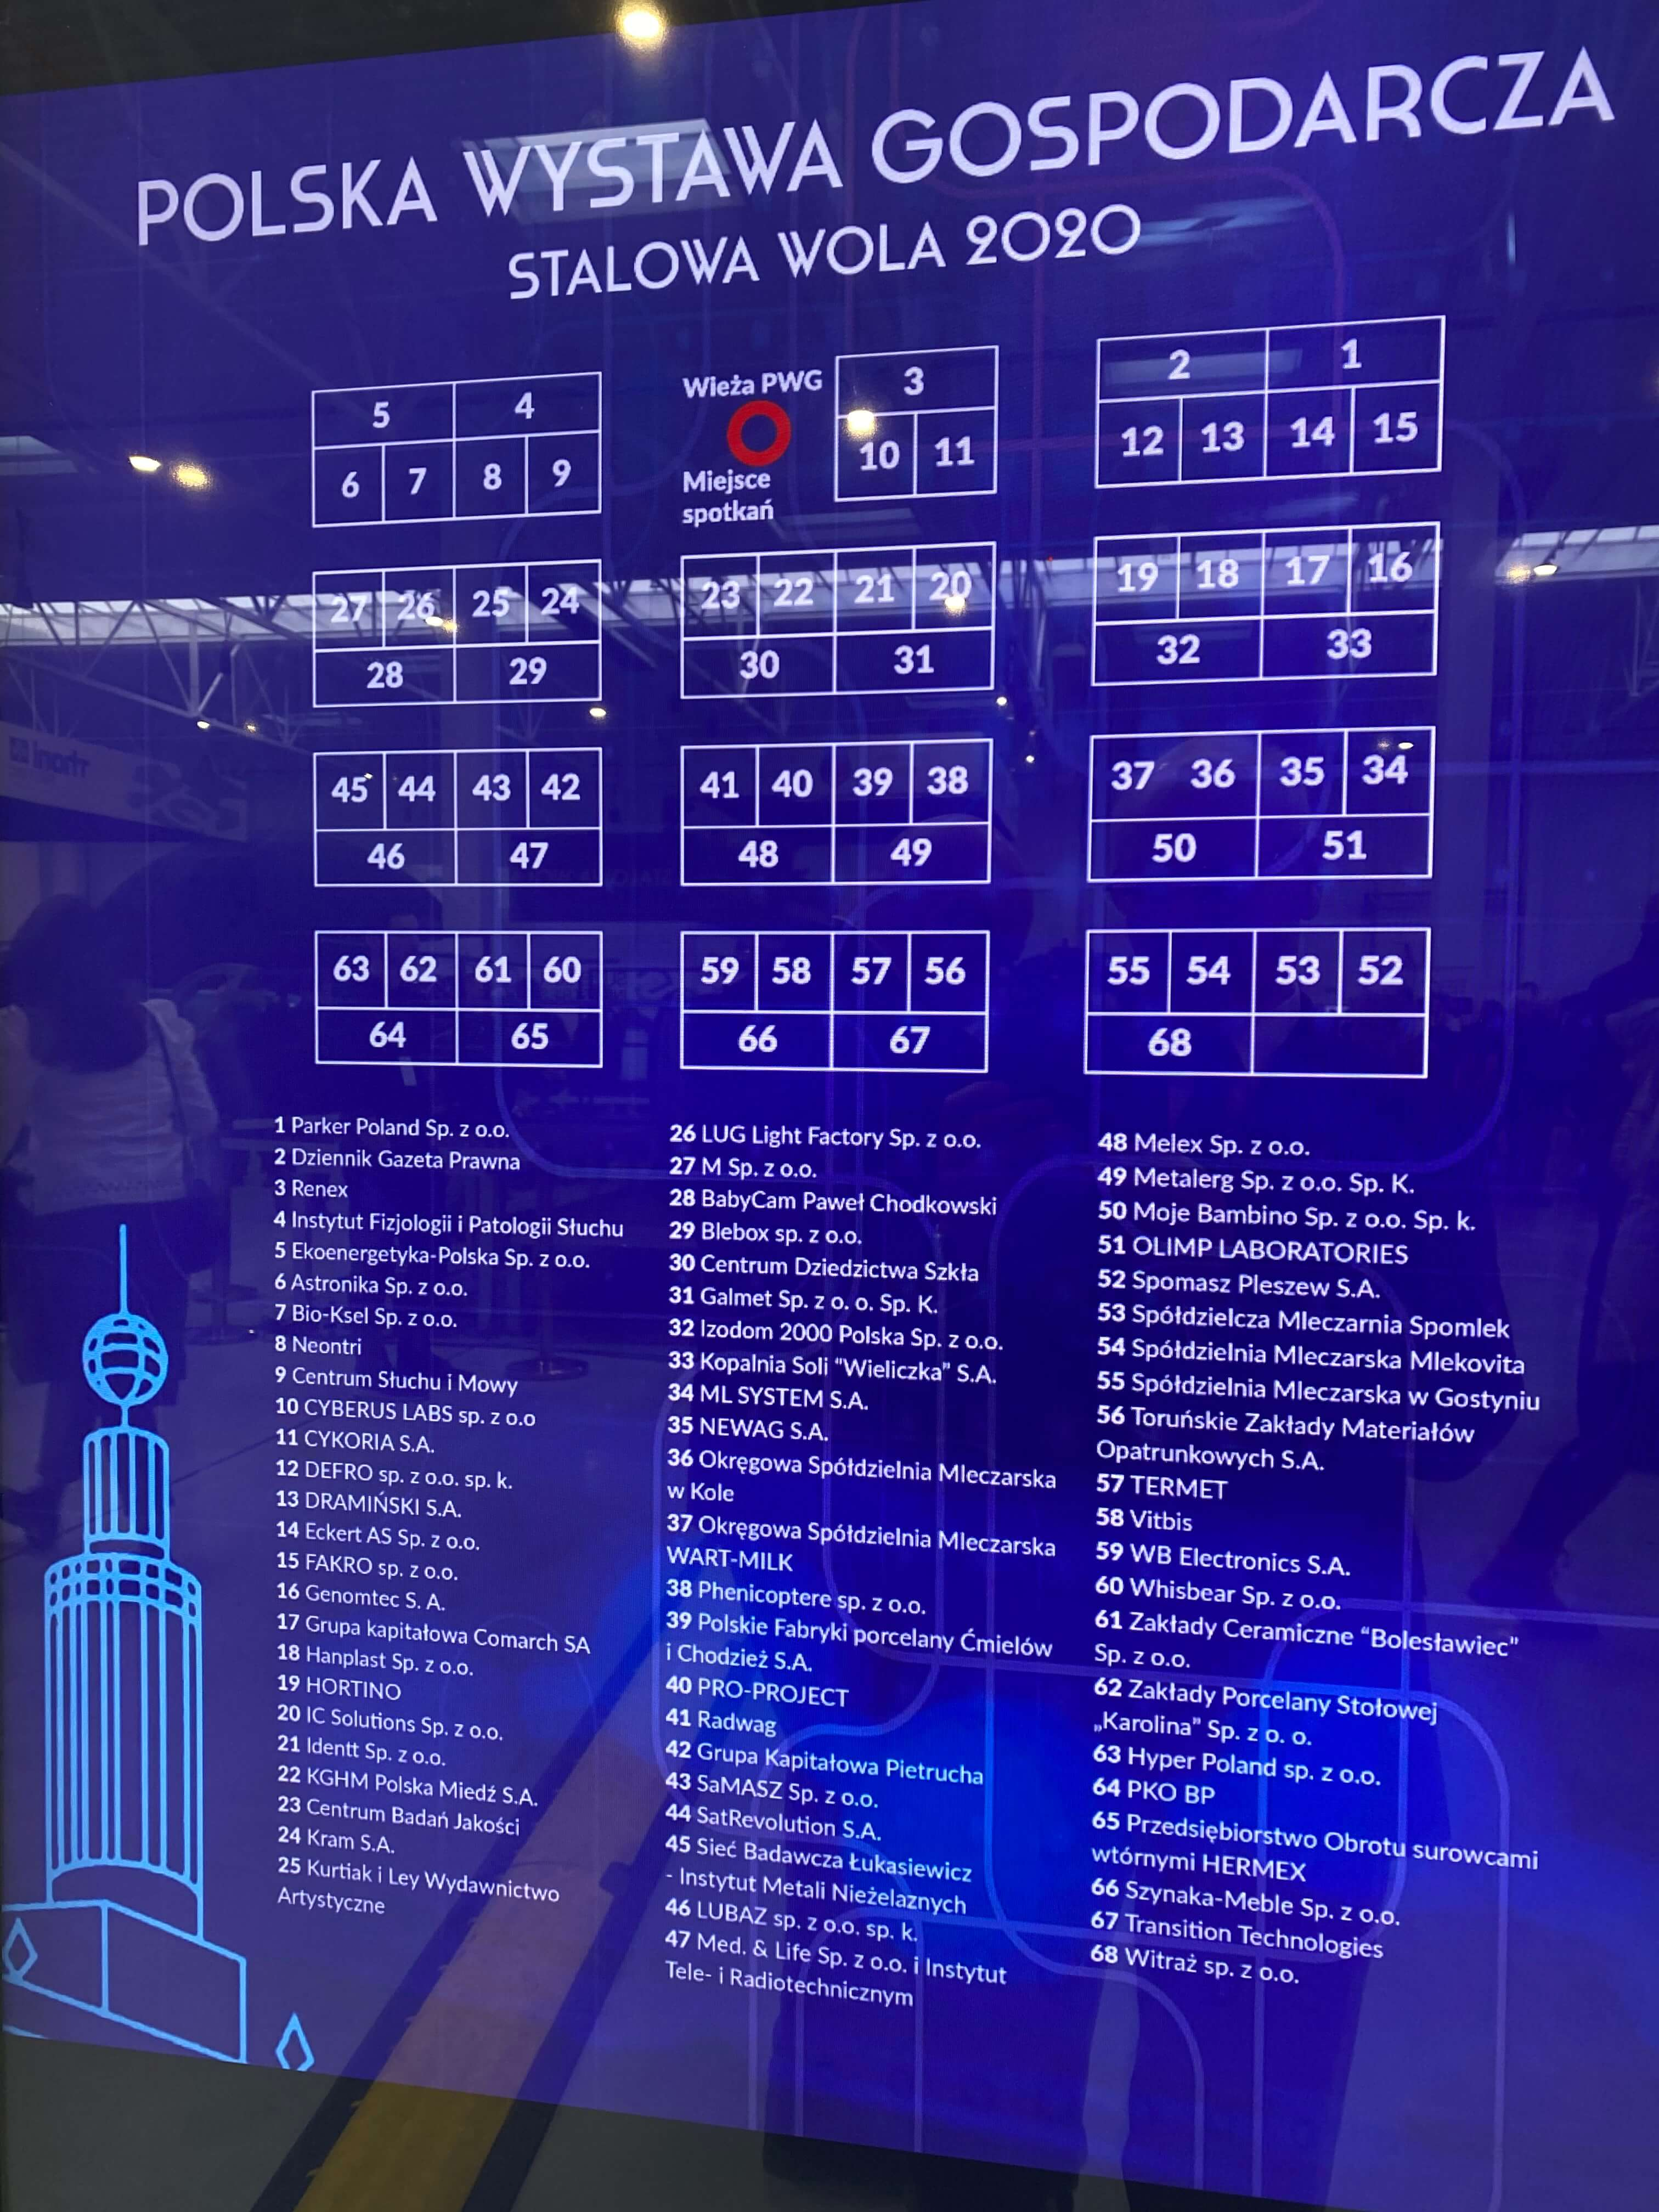 Picture of a blue, glass board on the Poliish Economic Exhibition That shows map and the list of 68 exhibitors.